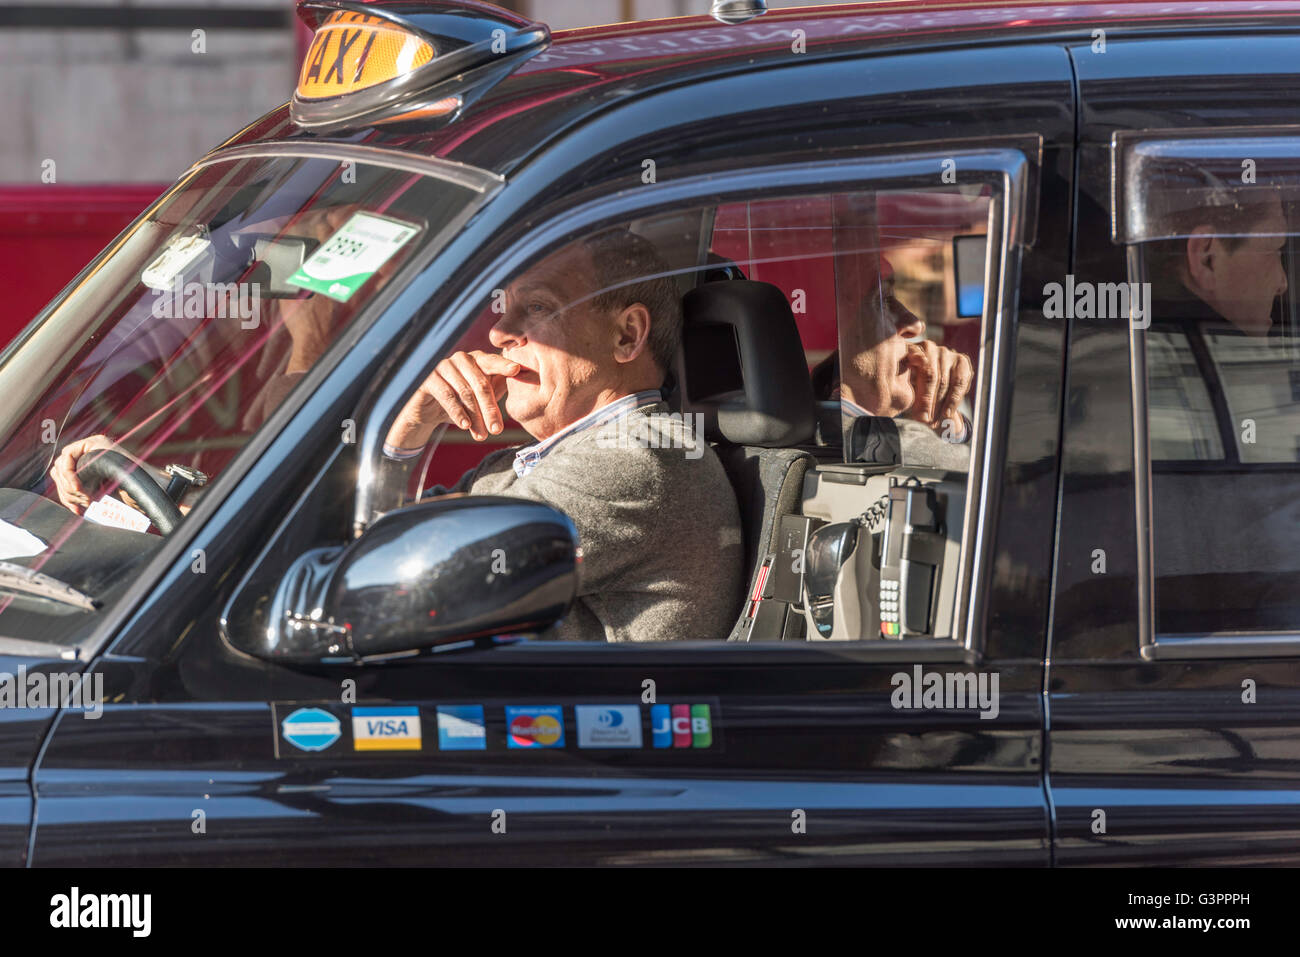 A black cab driver sitting in sunlight in busy traffic in London with a male passenger behind him. The taxi has - Stock Image